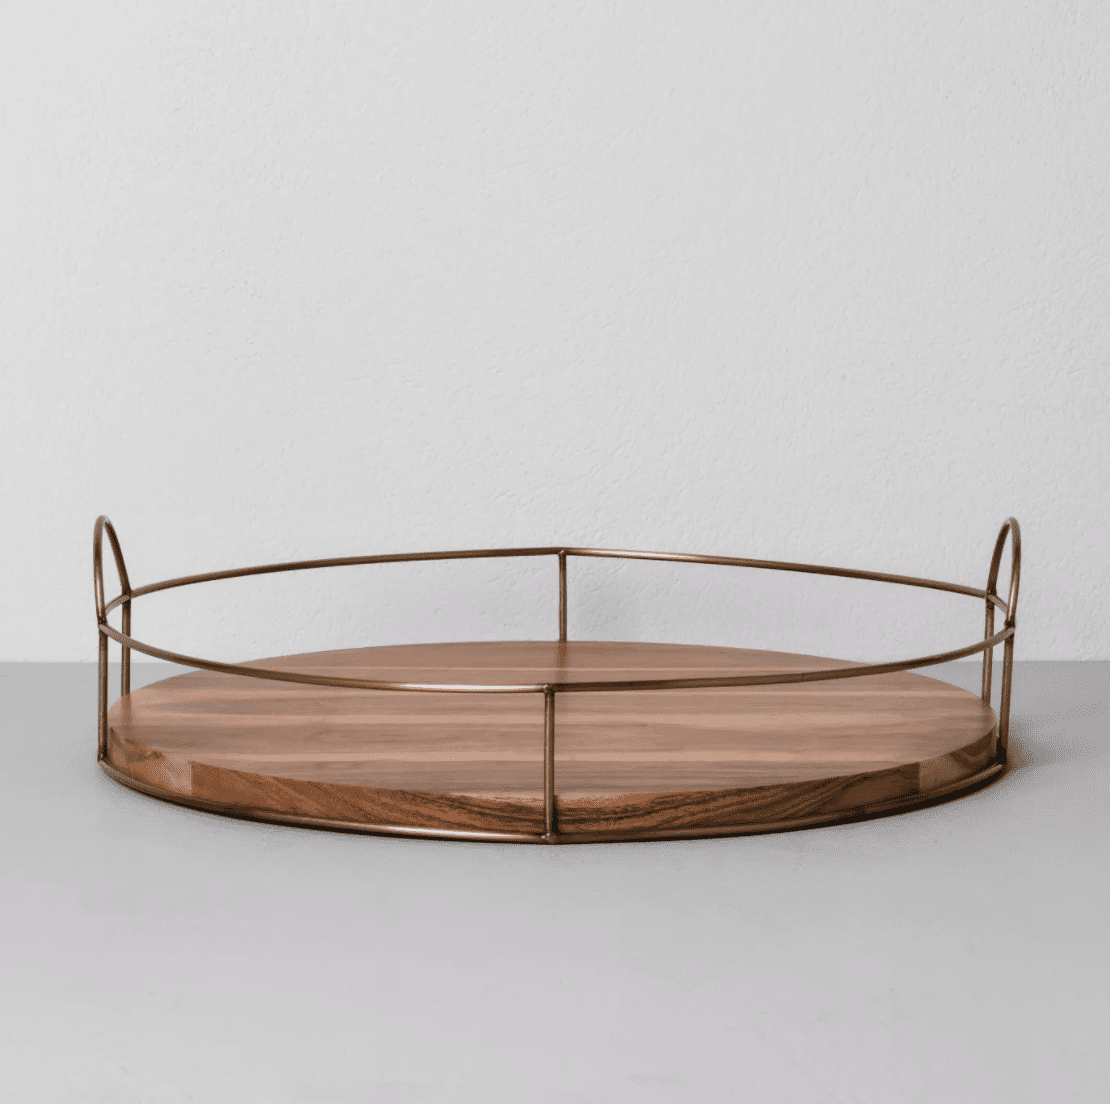 wood and wire tray hearth and hand with magnolia